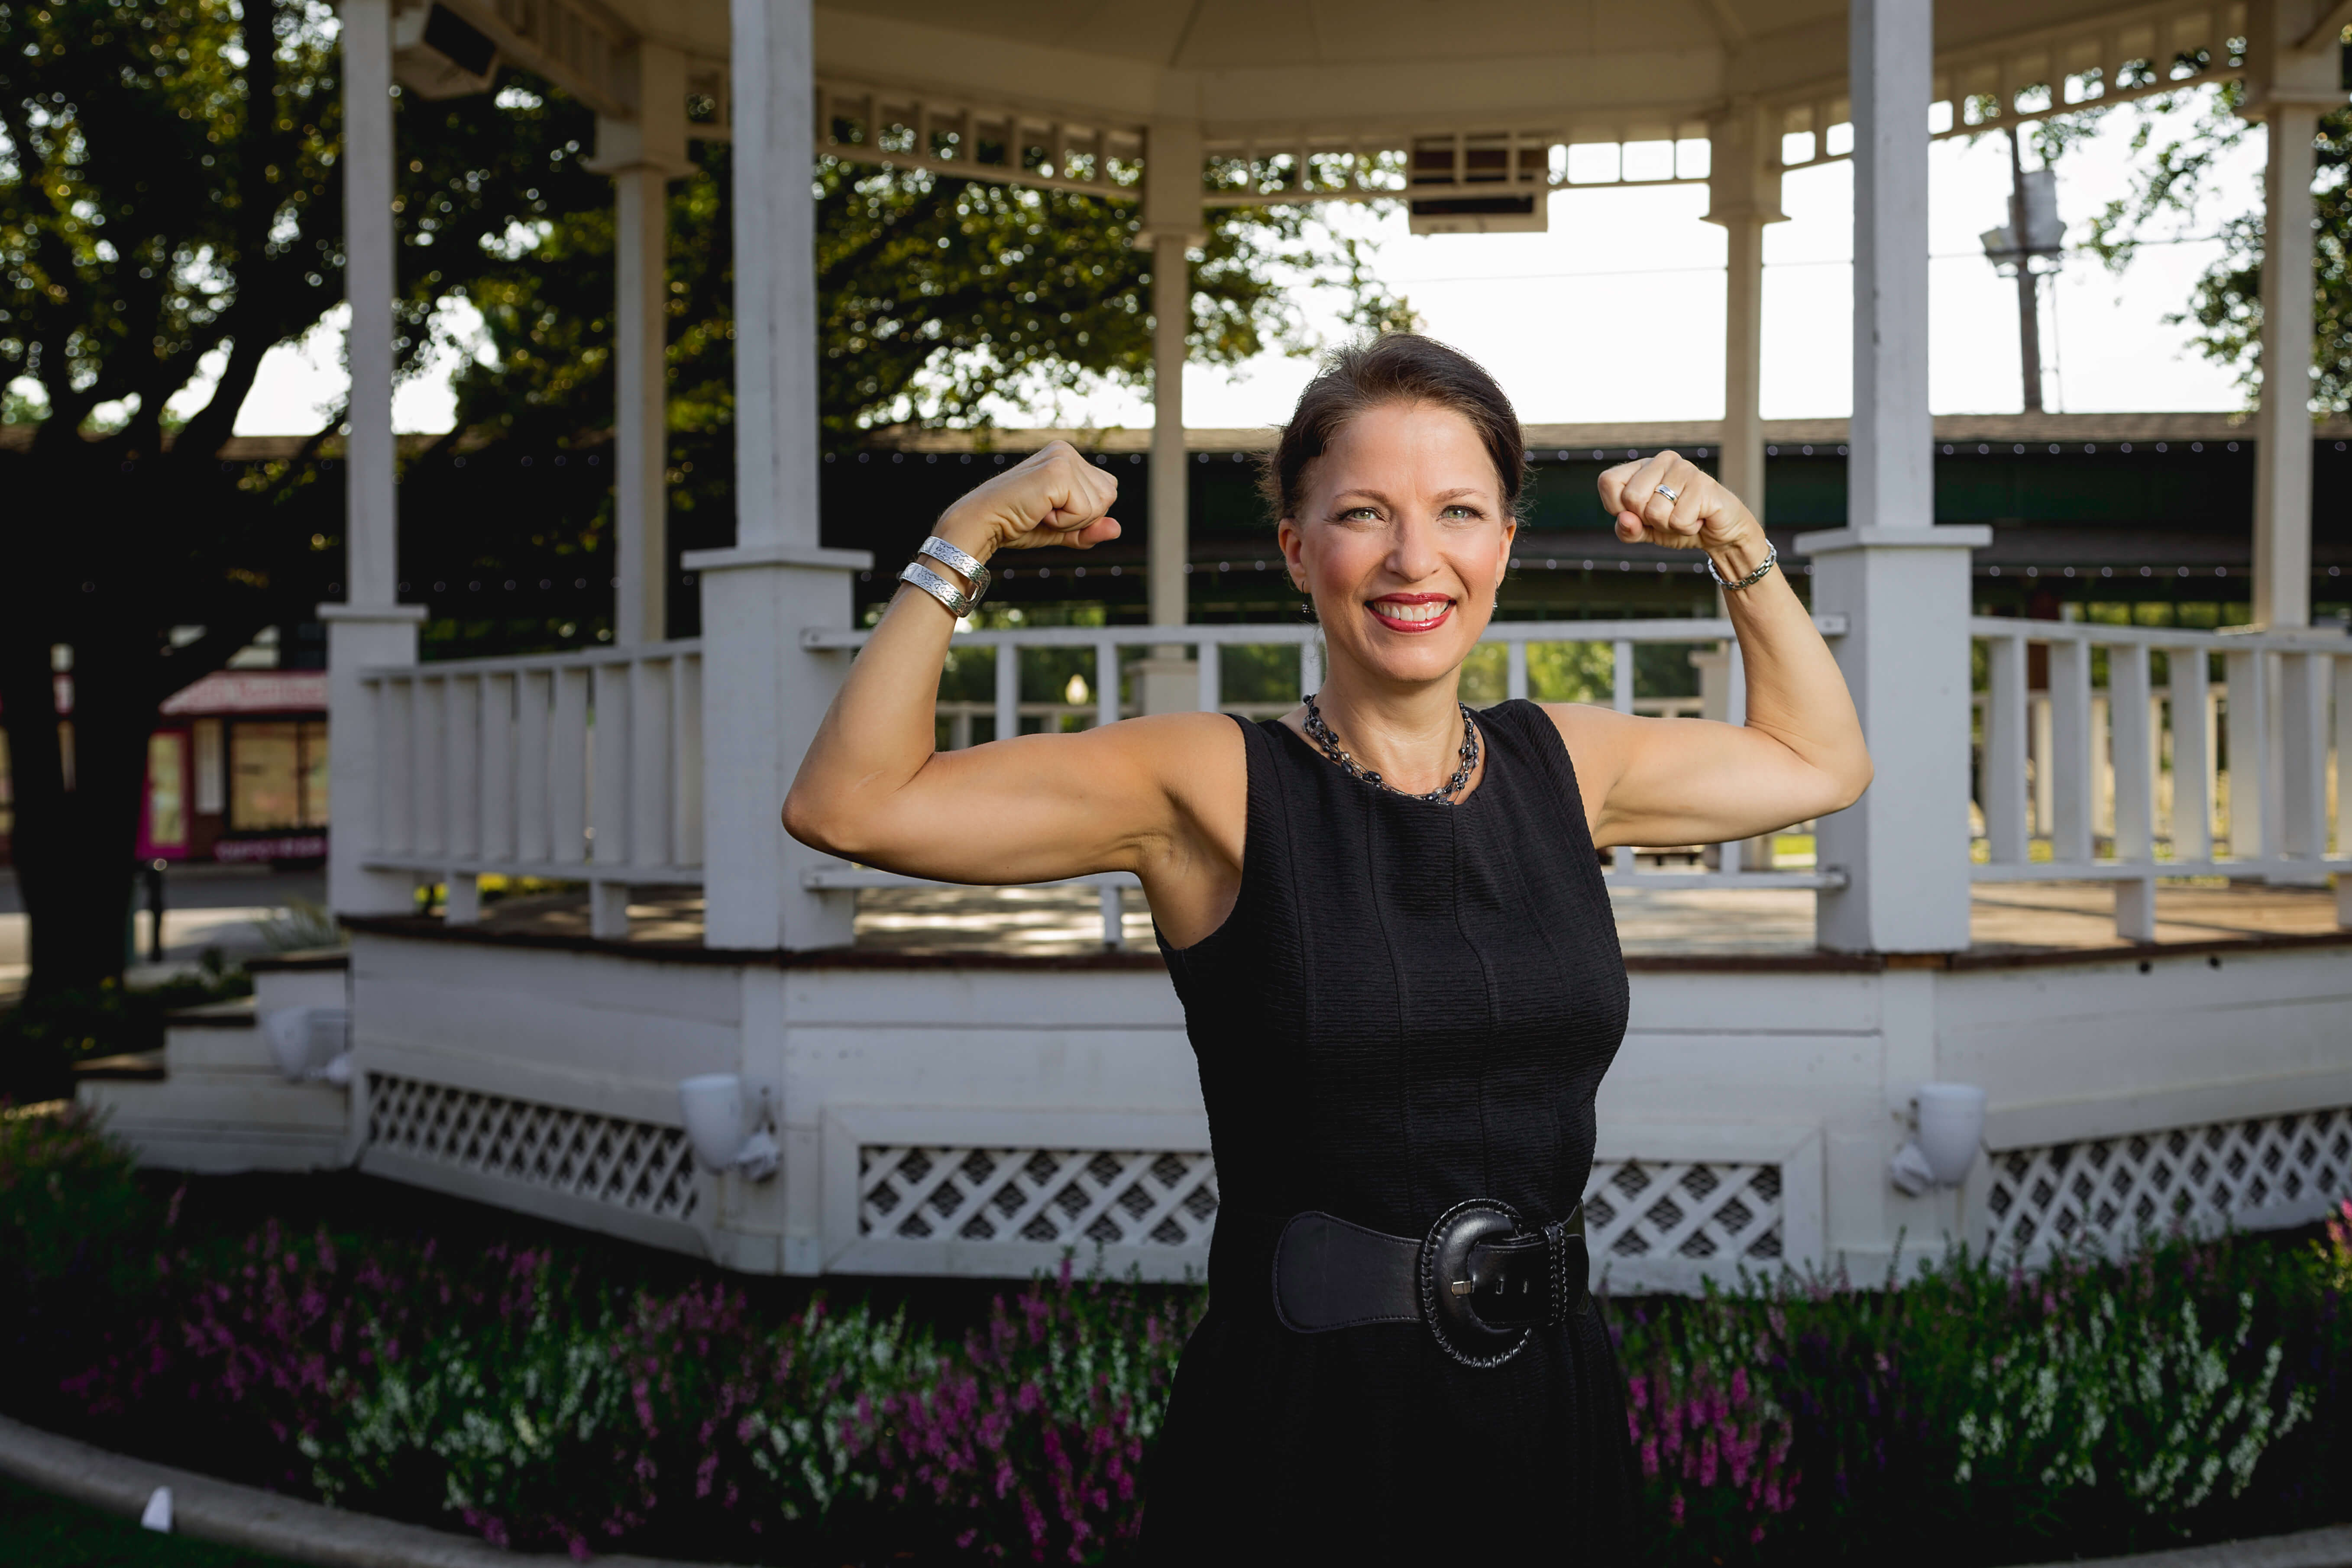 Janet St. James showing her strength as a breast cancer survivor